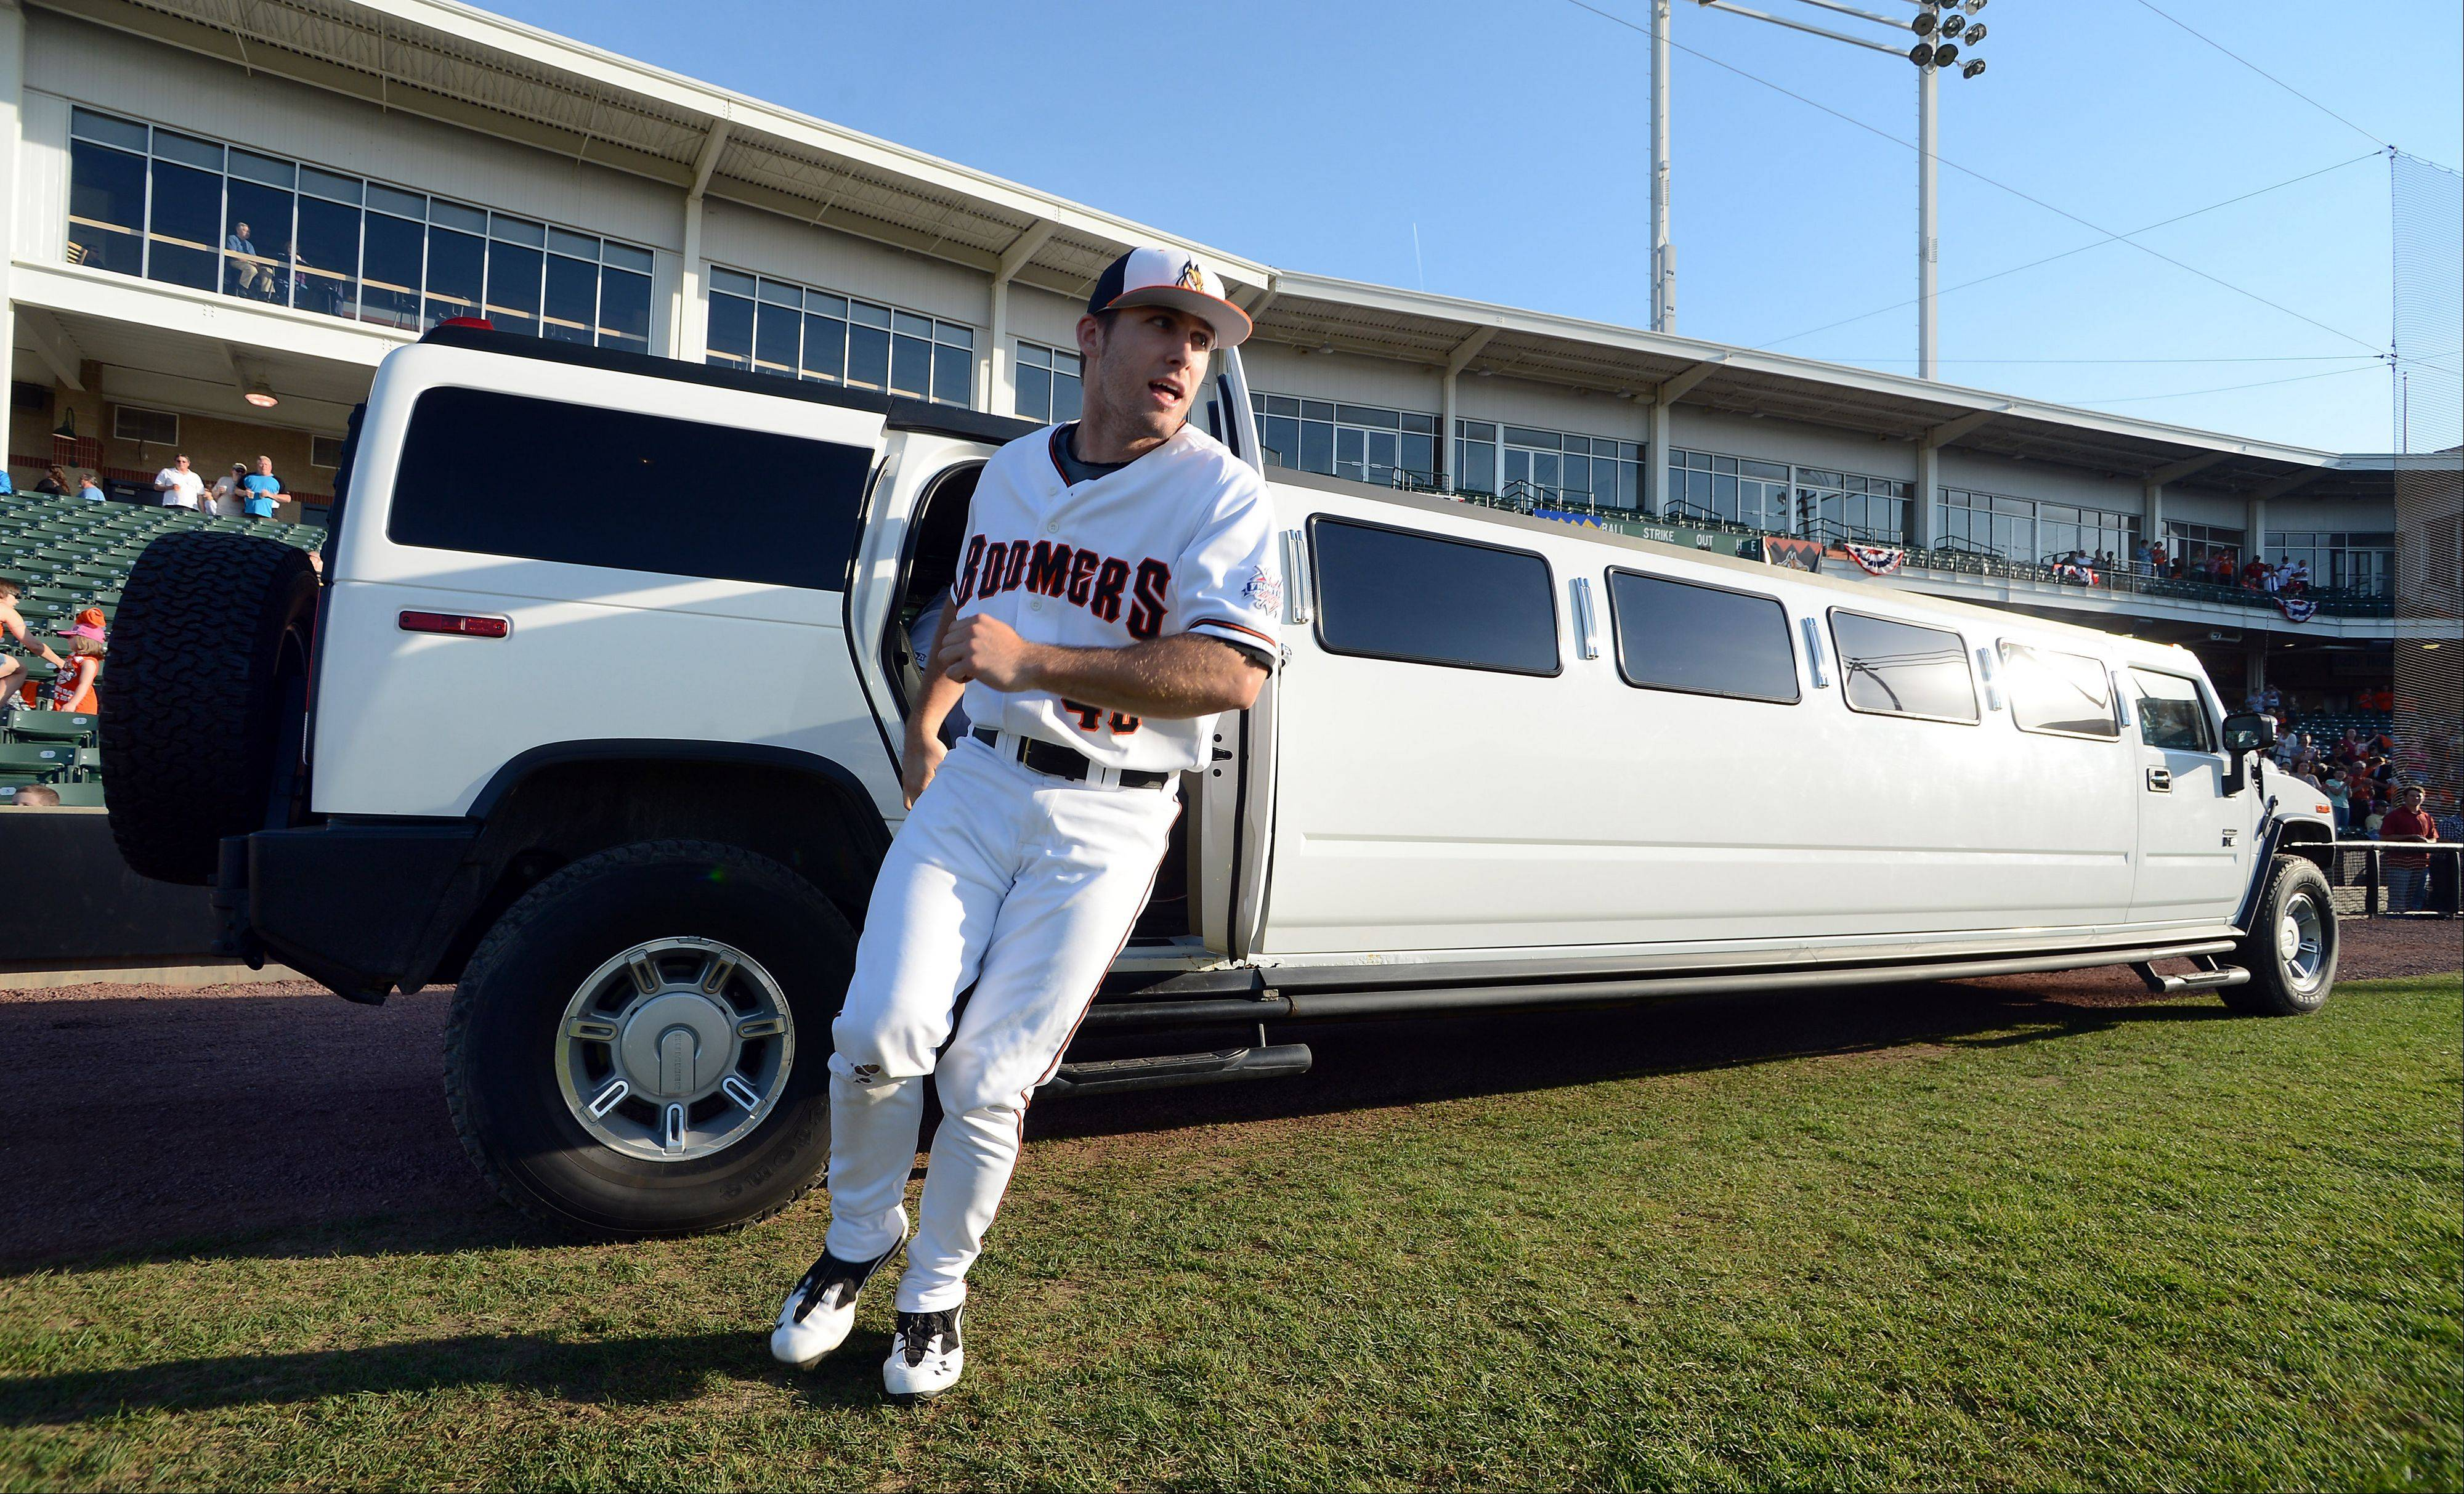 Schaumburg Boomer starter Chad Mozingo and his teammates arrive for their opening game in style as they get set to play the Windy City Thunderbolts on Thursday.